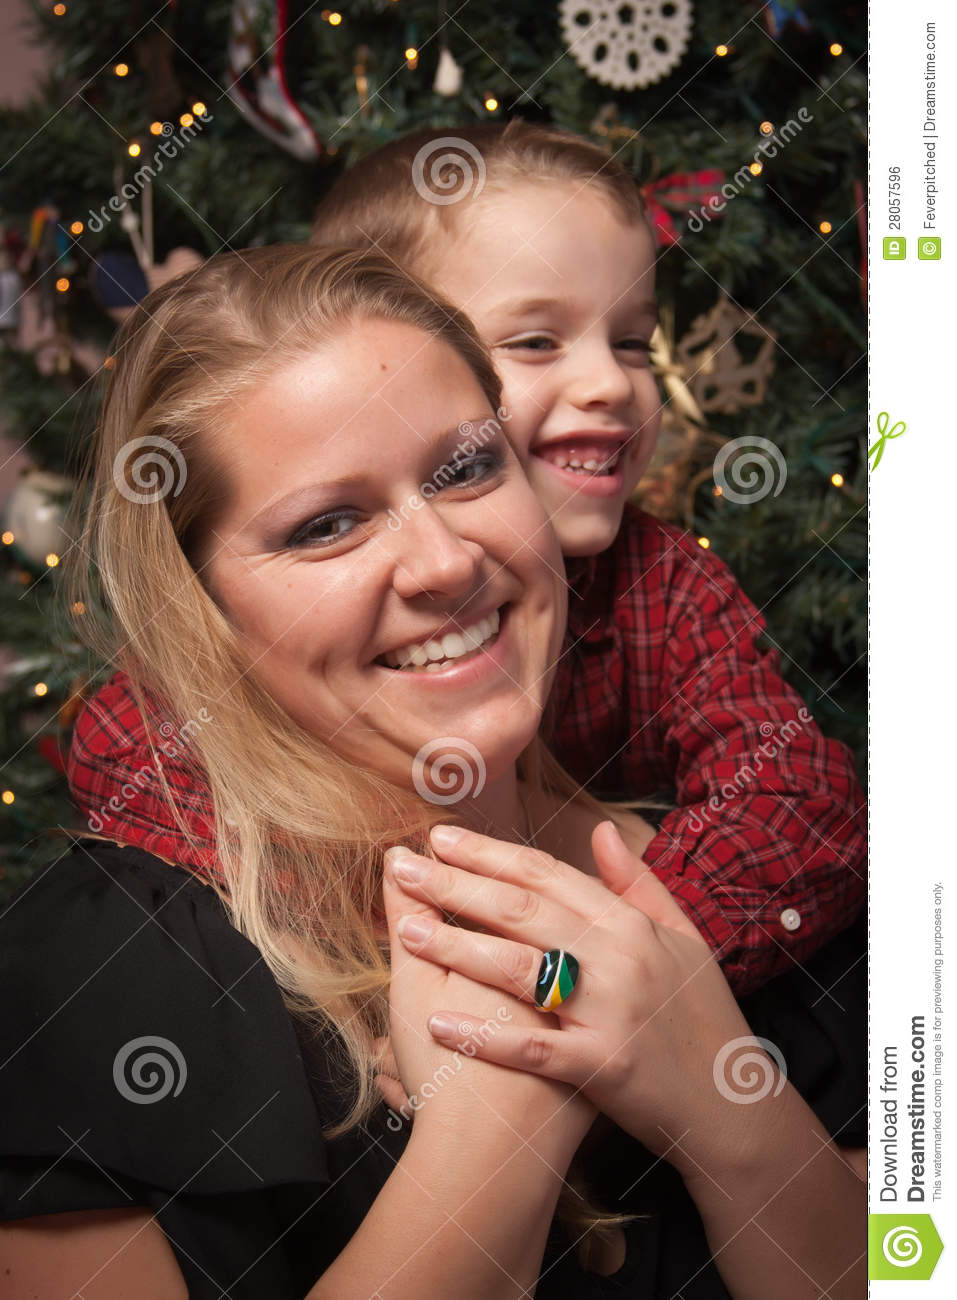 Adorable Son Hugging His Mom in Front Of Christmas Tree